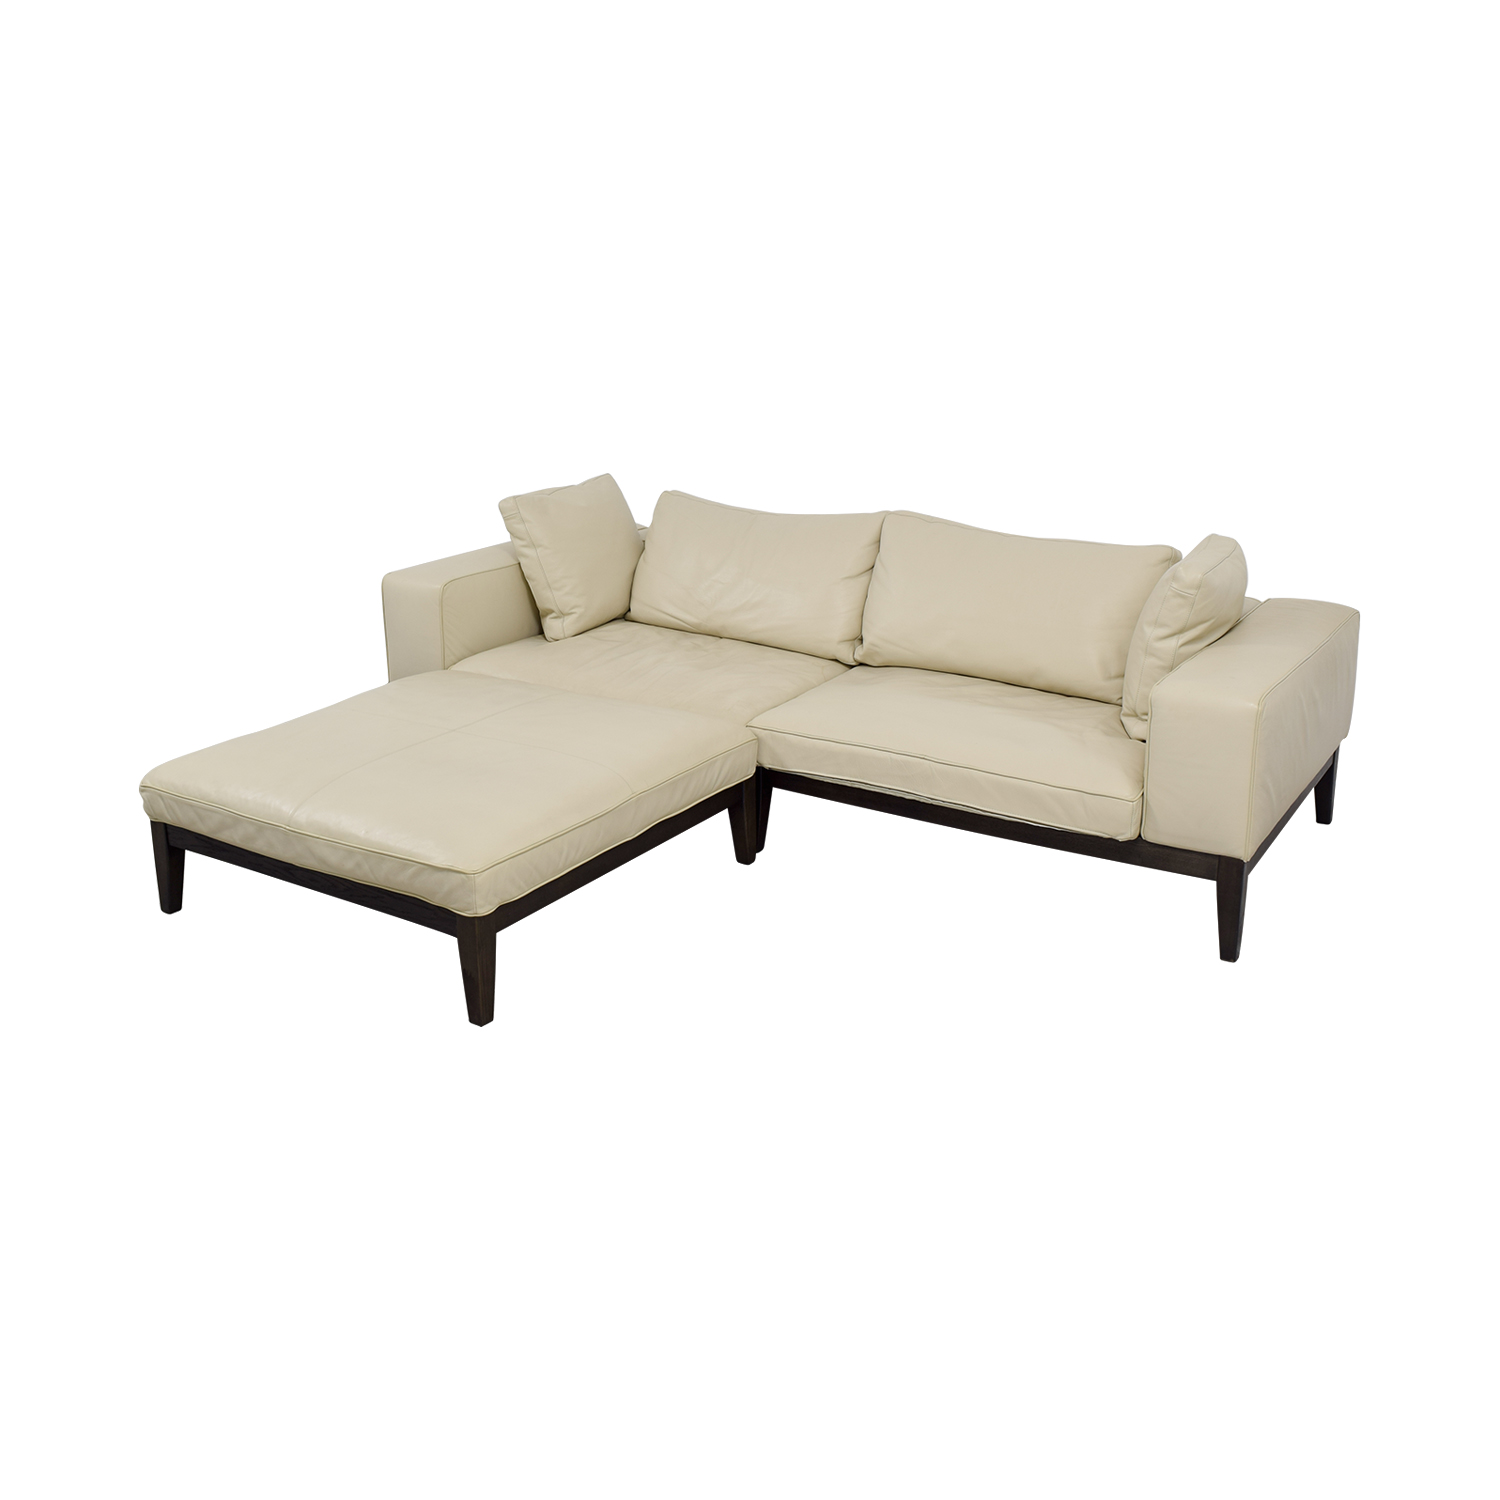 90 Off Tree Tree Contemporary Italian Off White Leather Couch With Large Chaise Ottoman Sofas